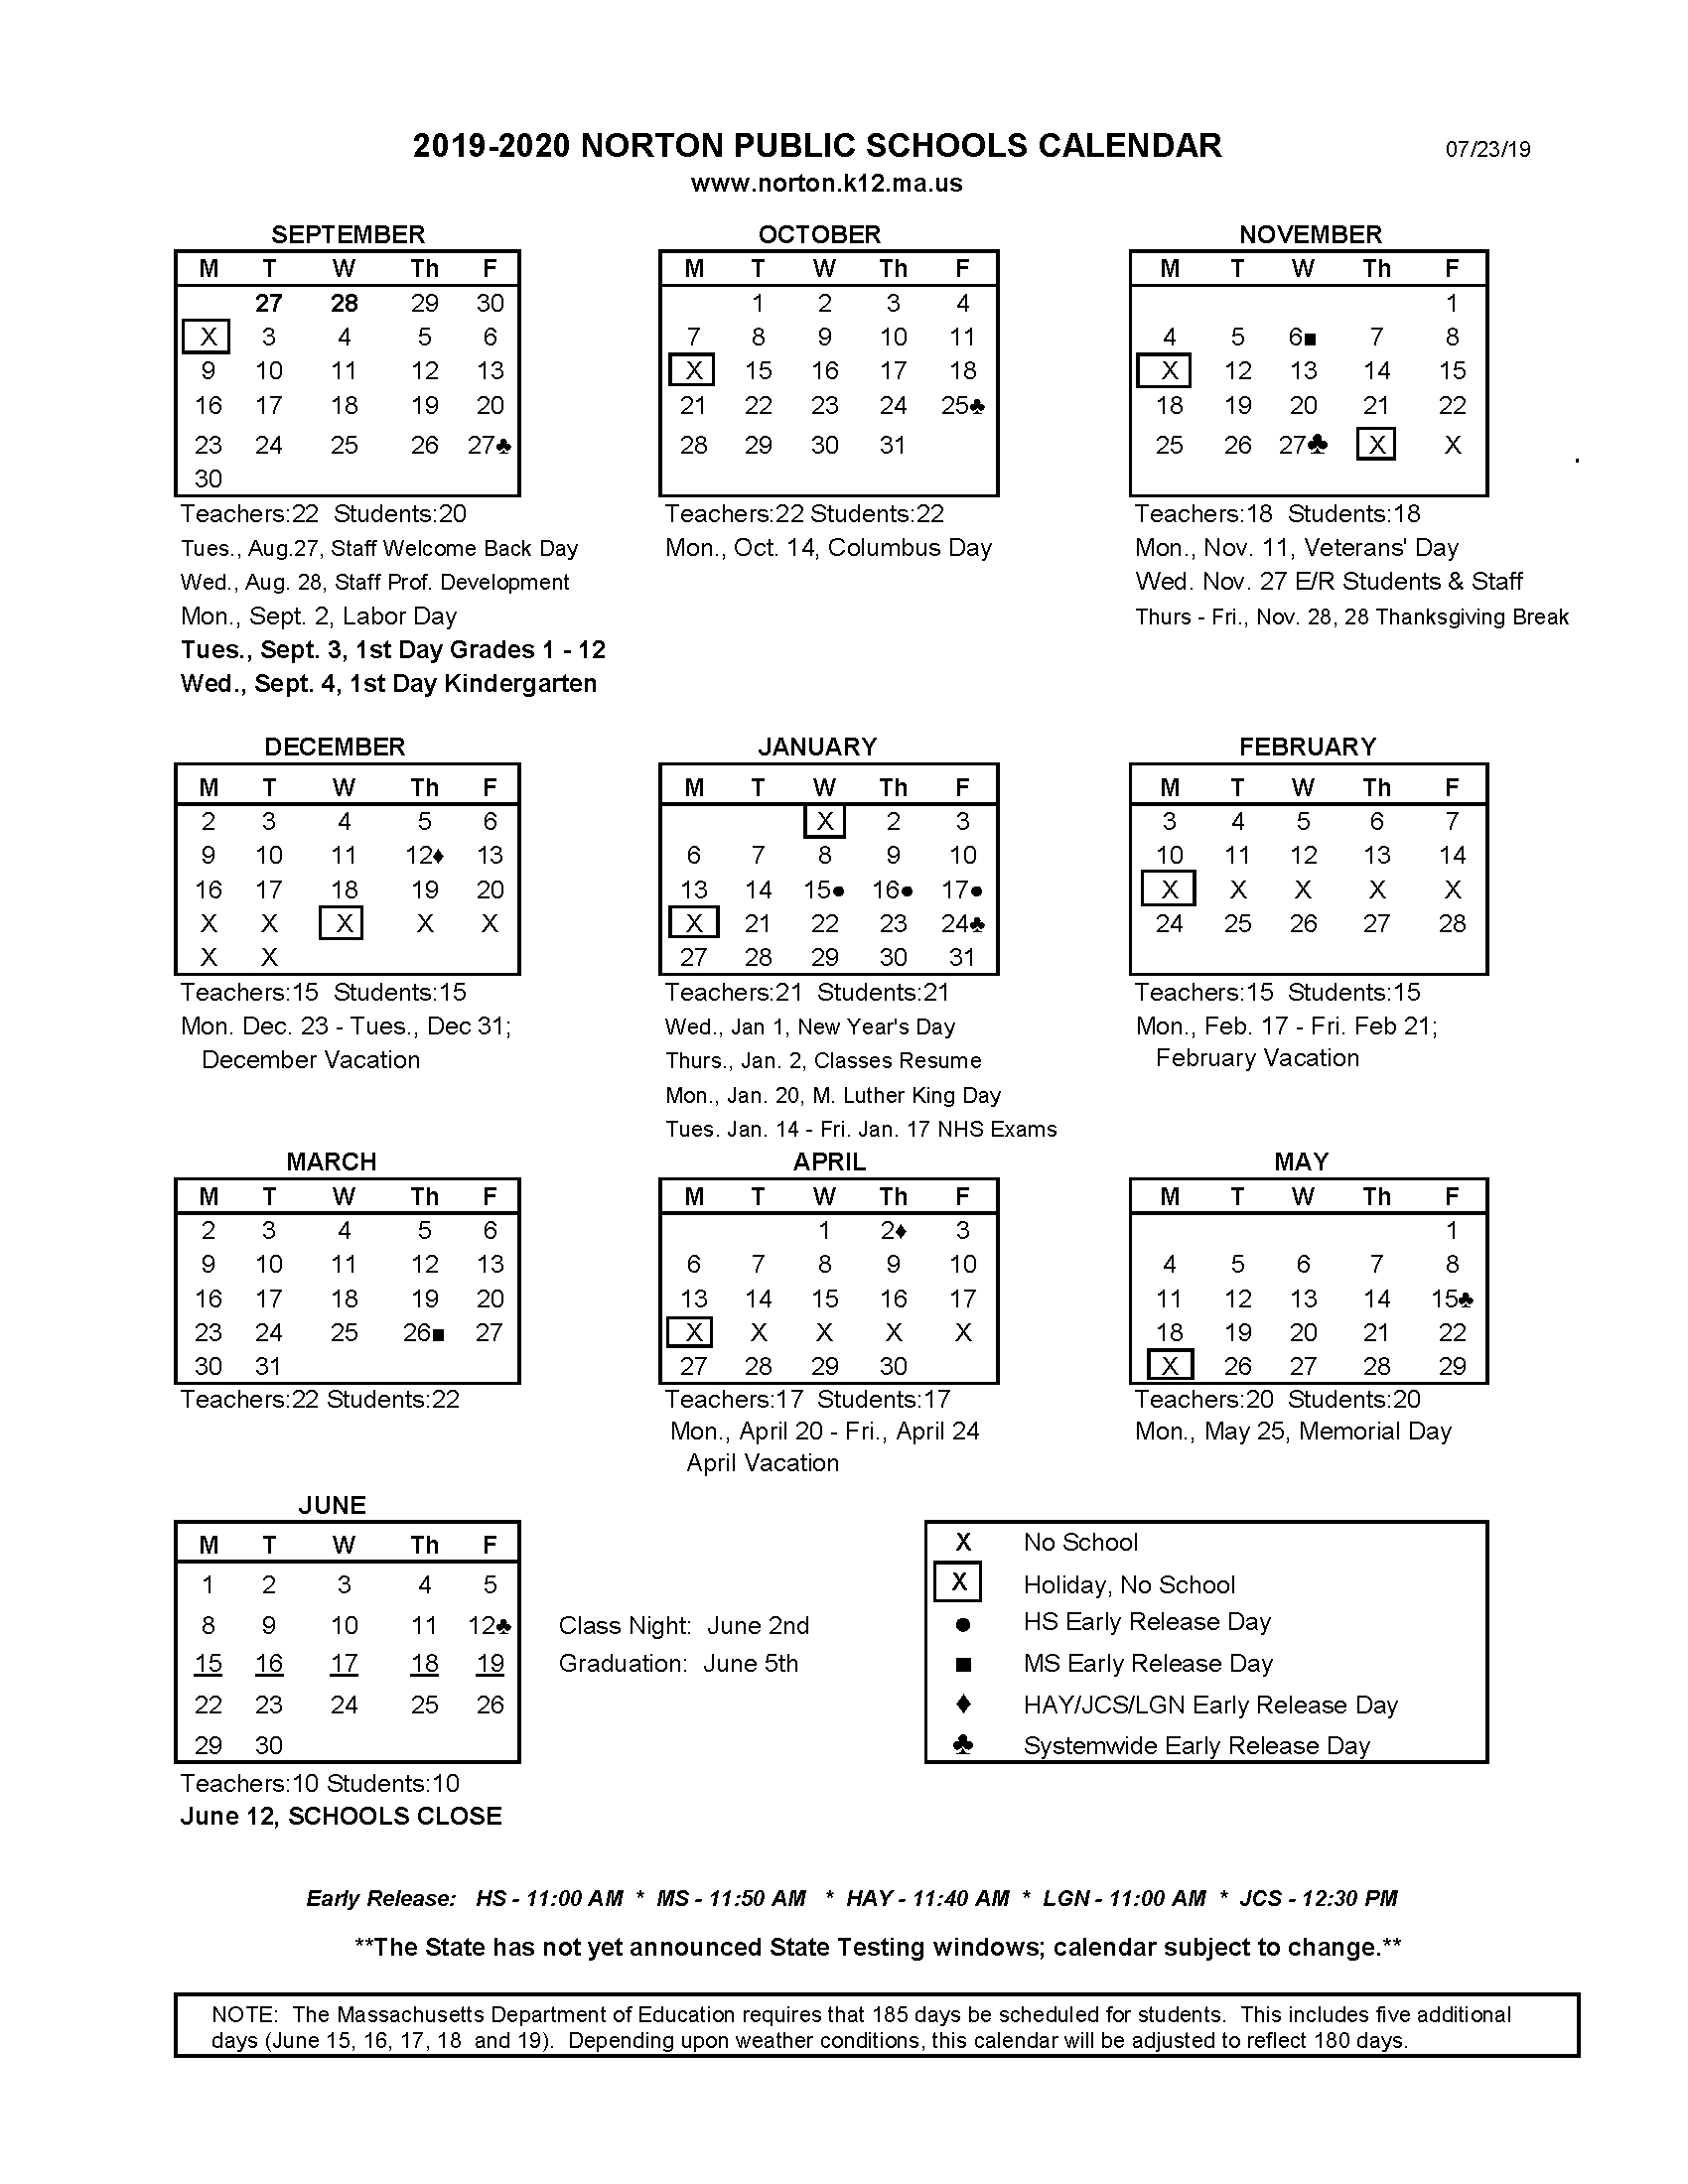 Printable School Calendar - Norton School District throughout Virginia Tech Academic Calendar 2019 2020